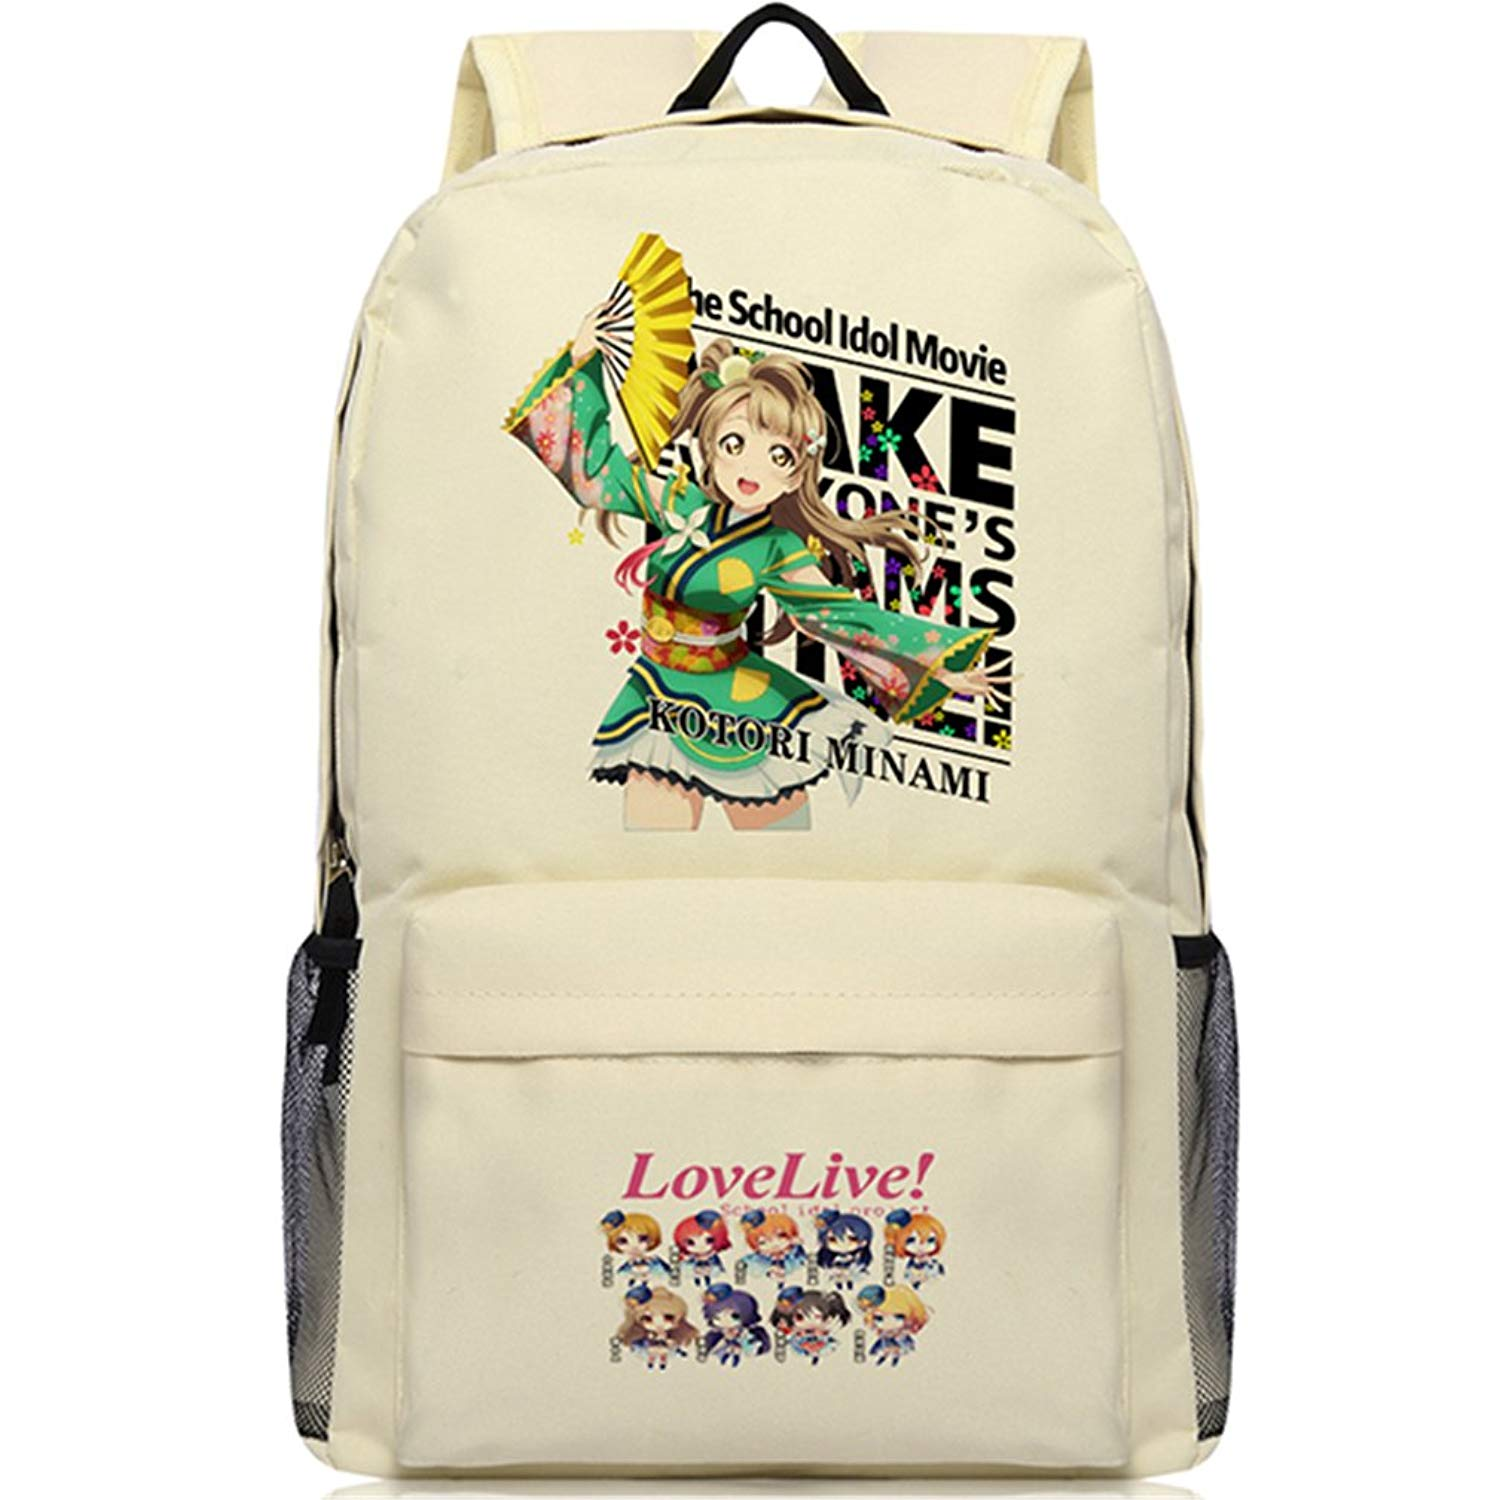 2db1c82cf9 Get Quotations · Gumstyle Lovelive Backpack Anime School Bag Classic  Schoolbag Beige